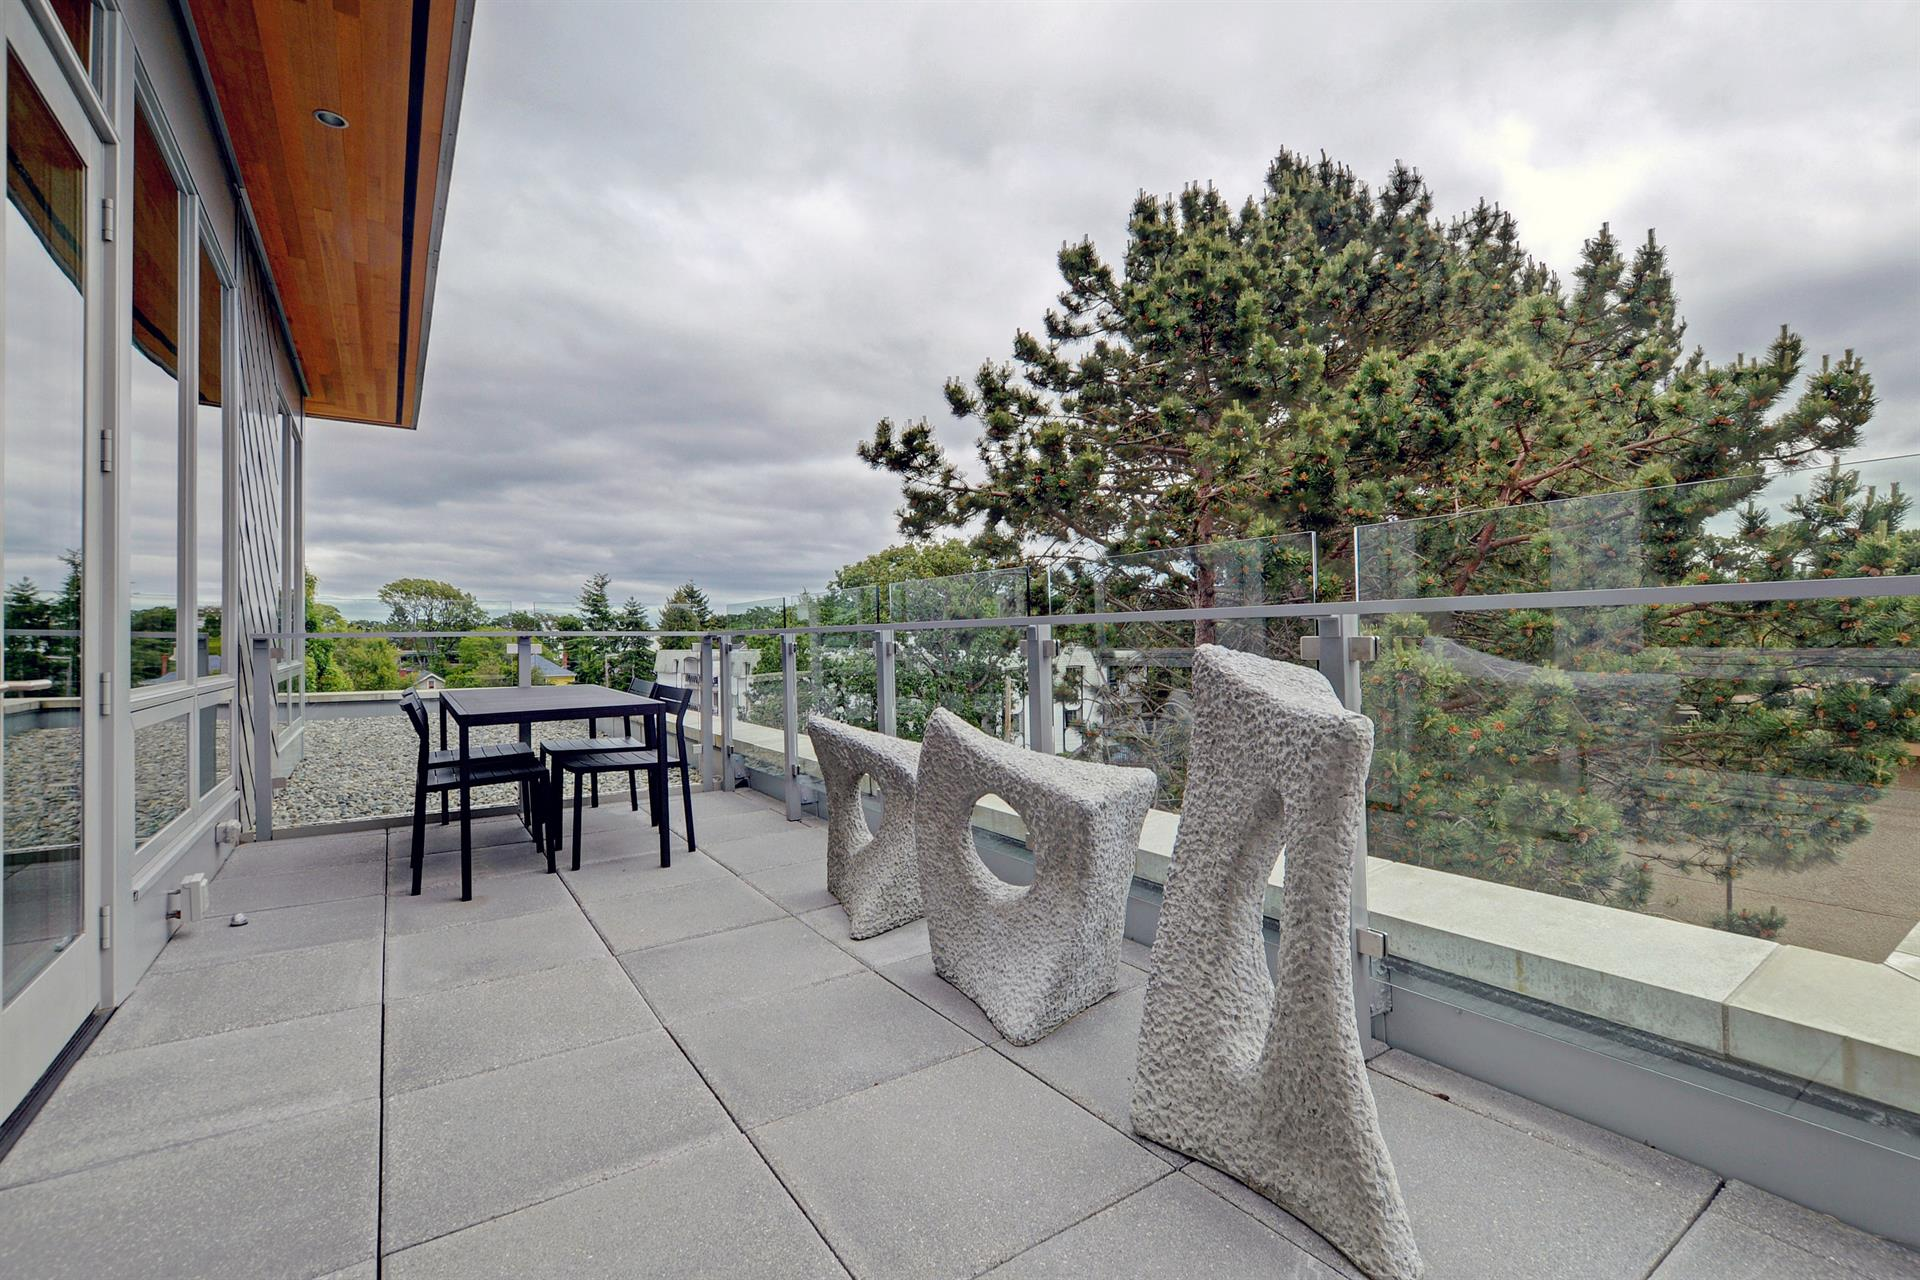 Additional photo for property listing at 404-1969 Oak Bay Ave Victoria, Columbia Britanica,Canadá